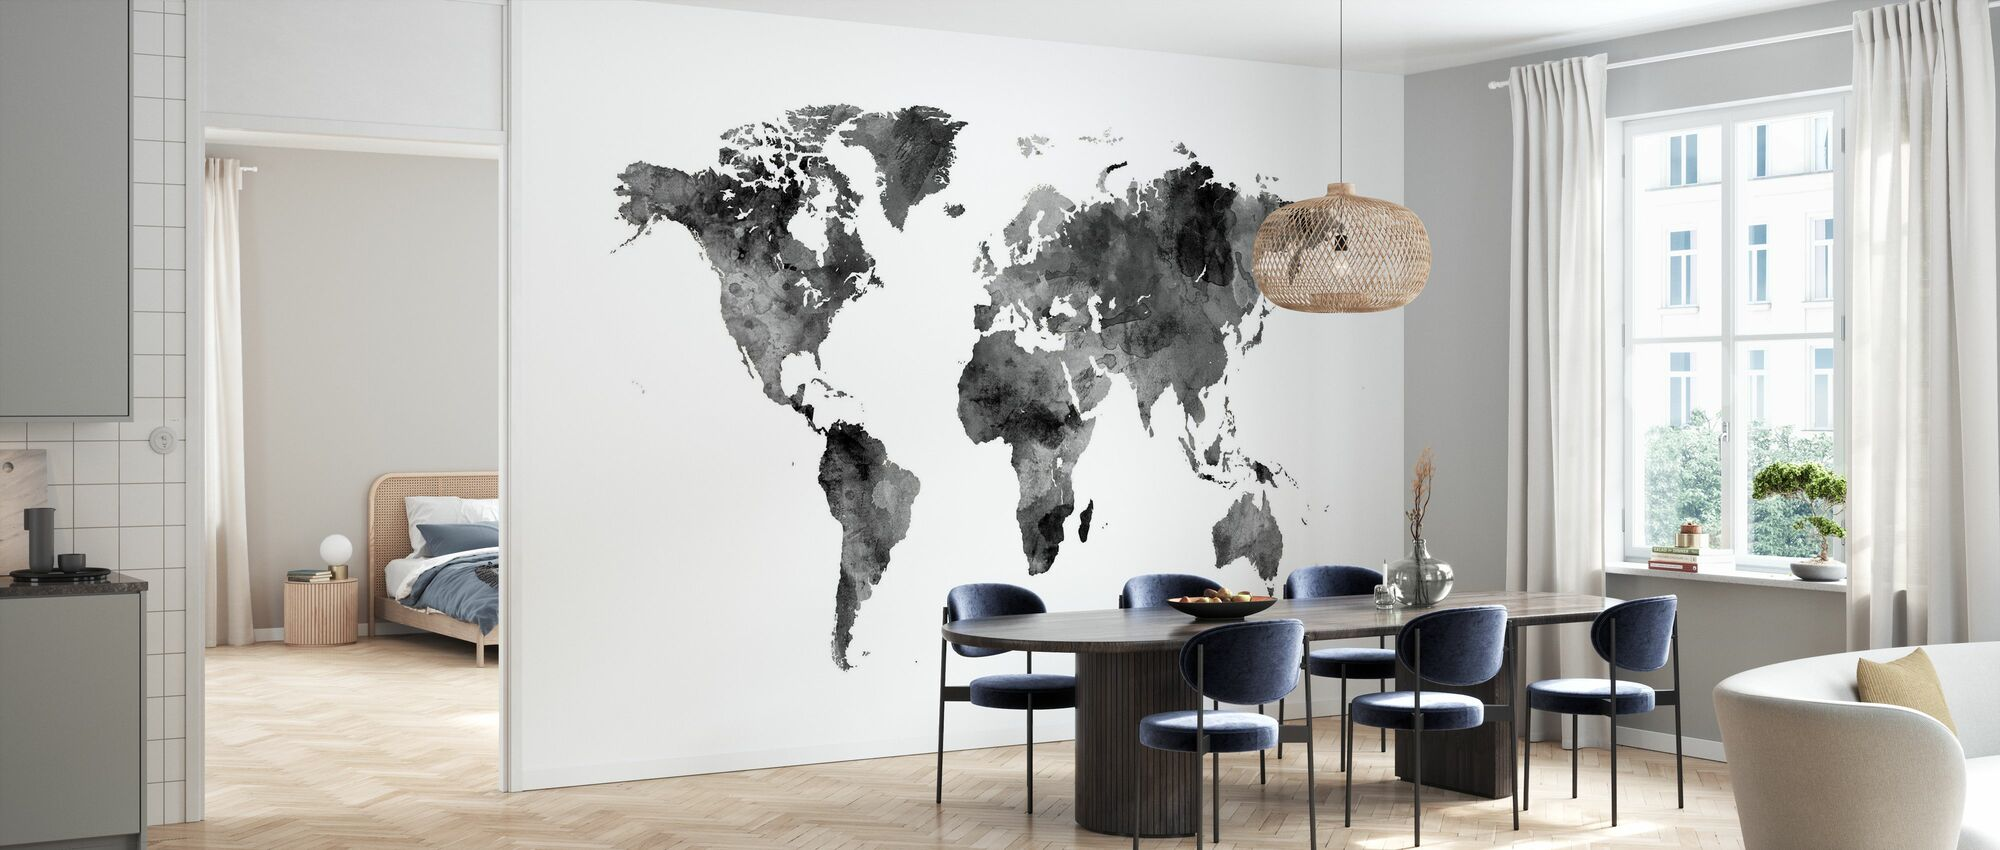 Acuarela World Map Black - Papel pintado - Cocina